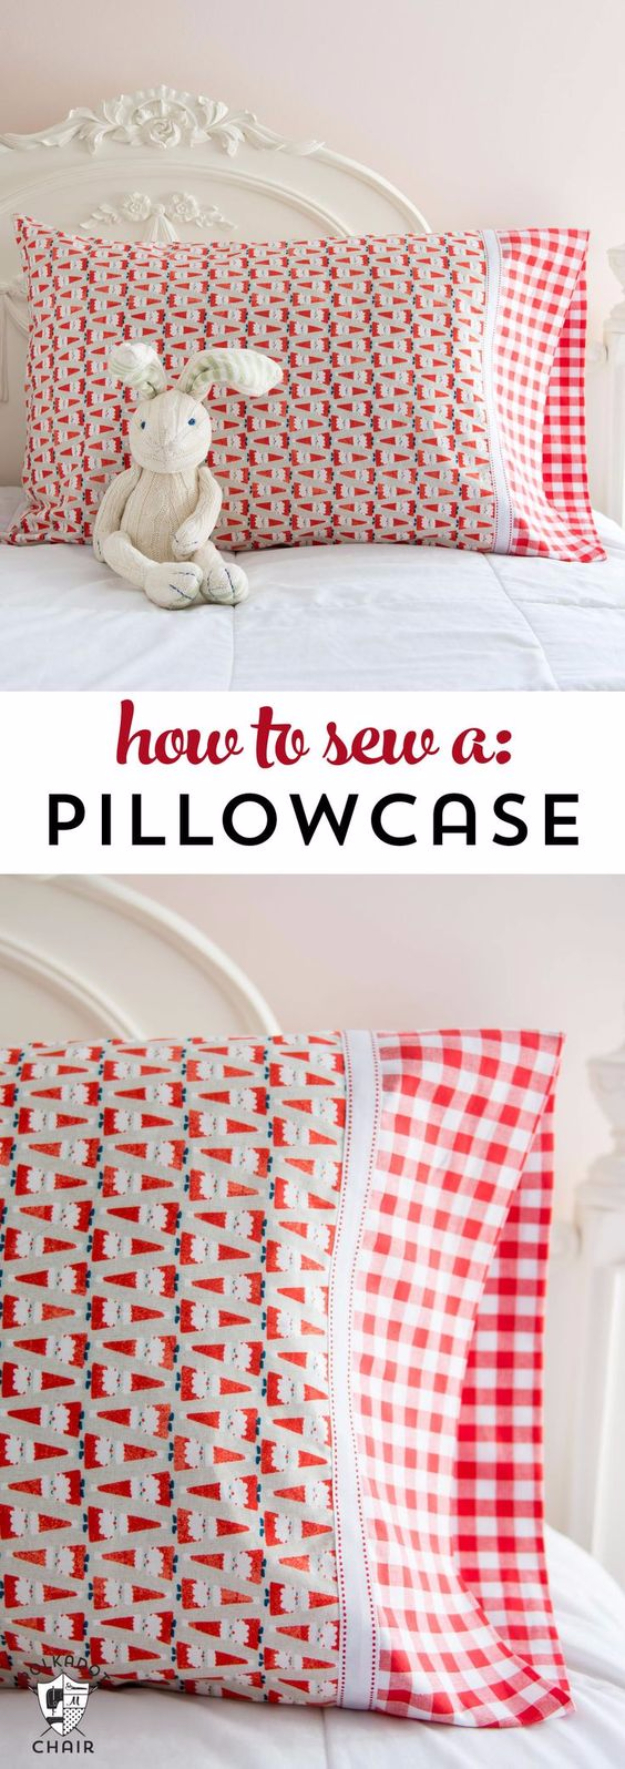 DIY Pillowcases - Easy Way To Sew A Pillowcase - Easy Sewing Projects for Pillows - Bedroom and Home Decor Ideas - Sewing Patterns and Tutorials - No Sew Ideas - DIY Projects and Crafts for Women #sewing #diydecor #pillows